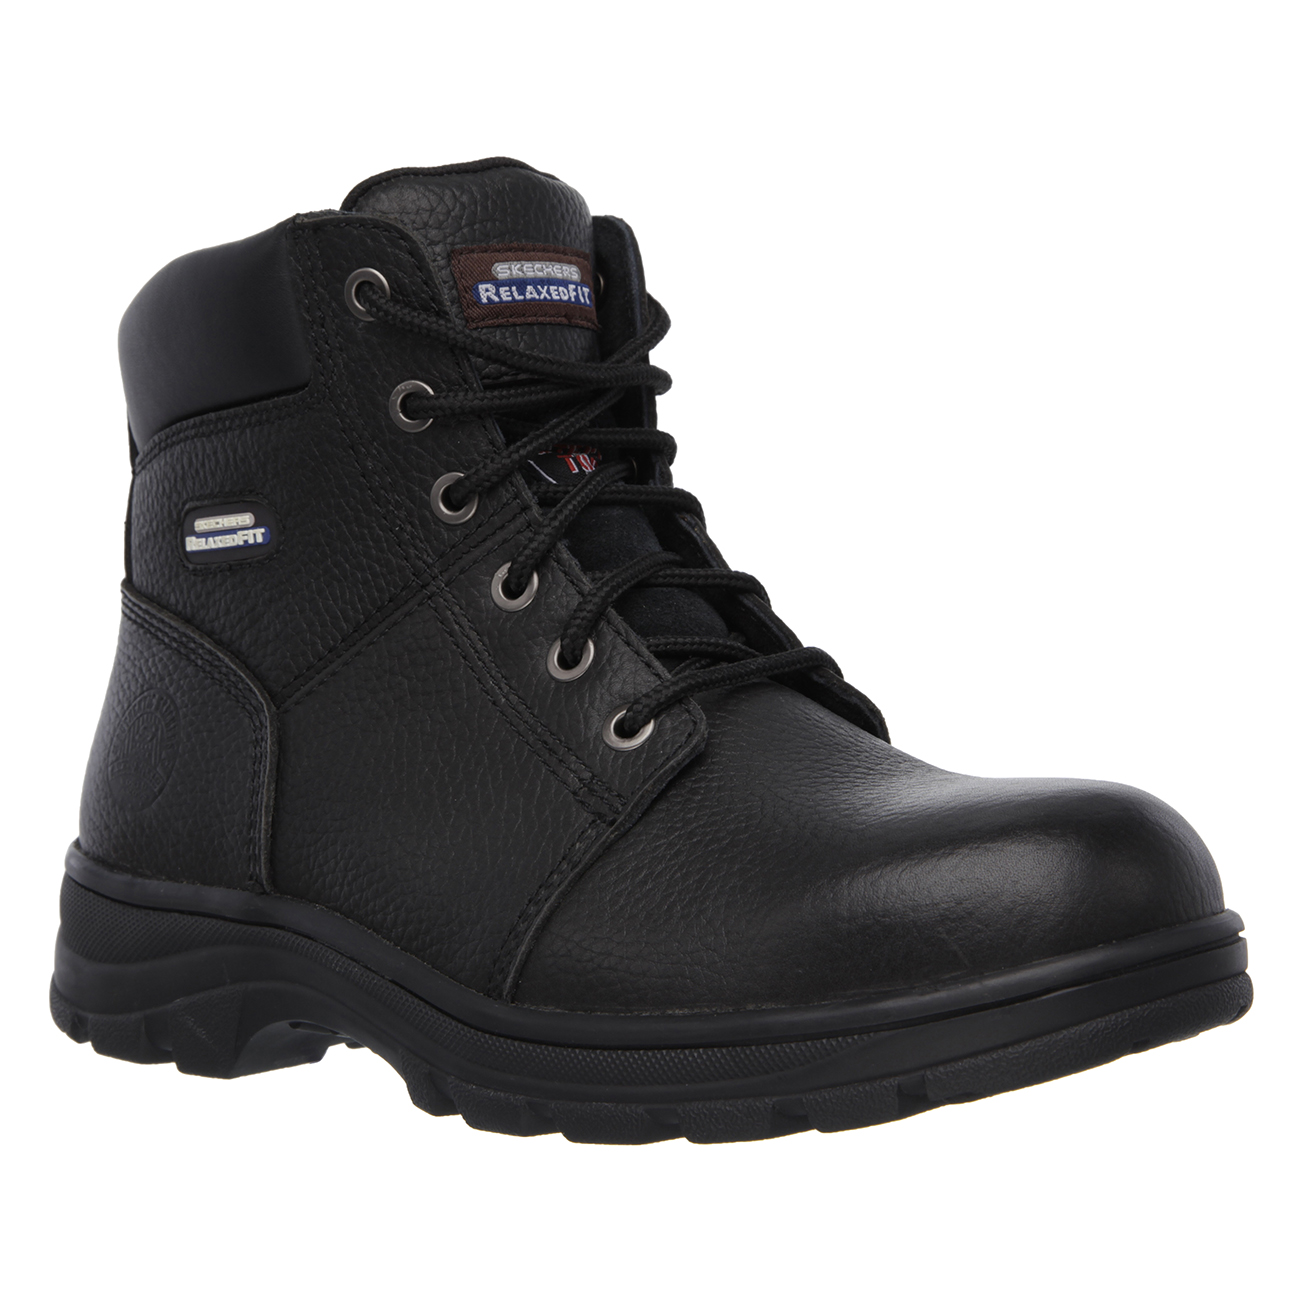 Skechers Workshire ST Relaxed Fit